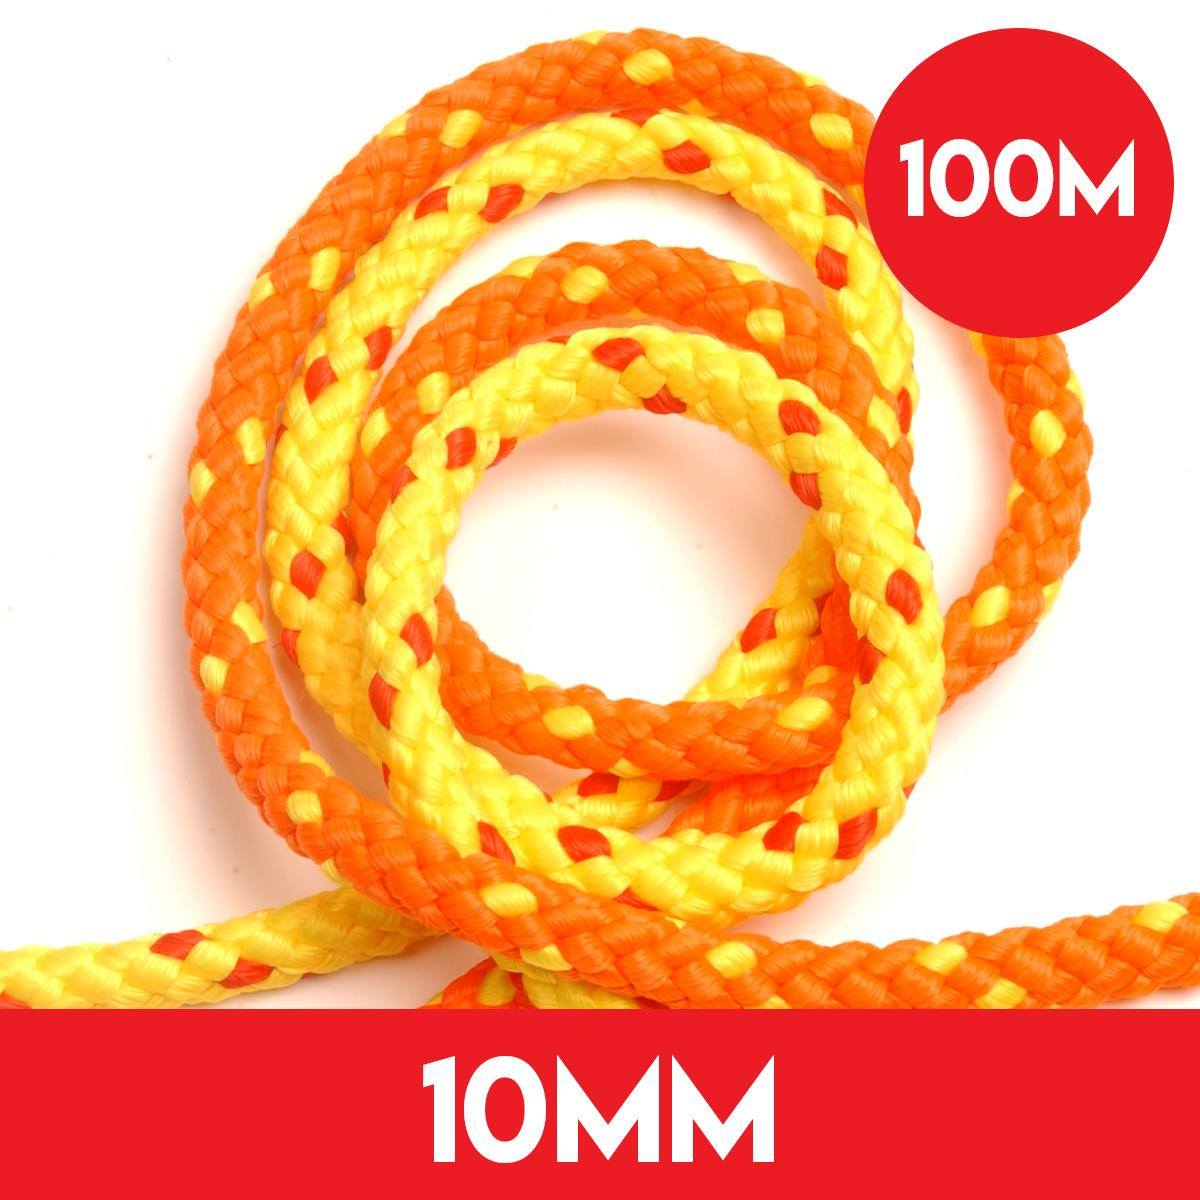 100m of 10mm Floatline Tow Rope